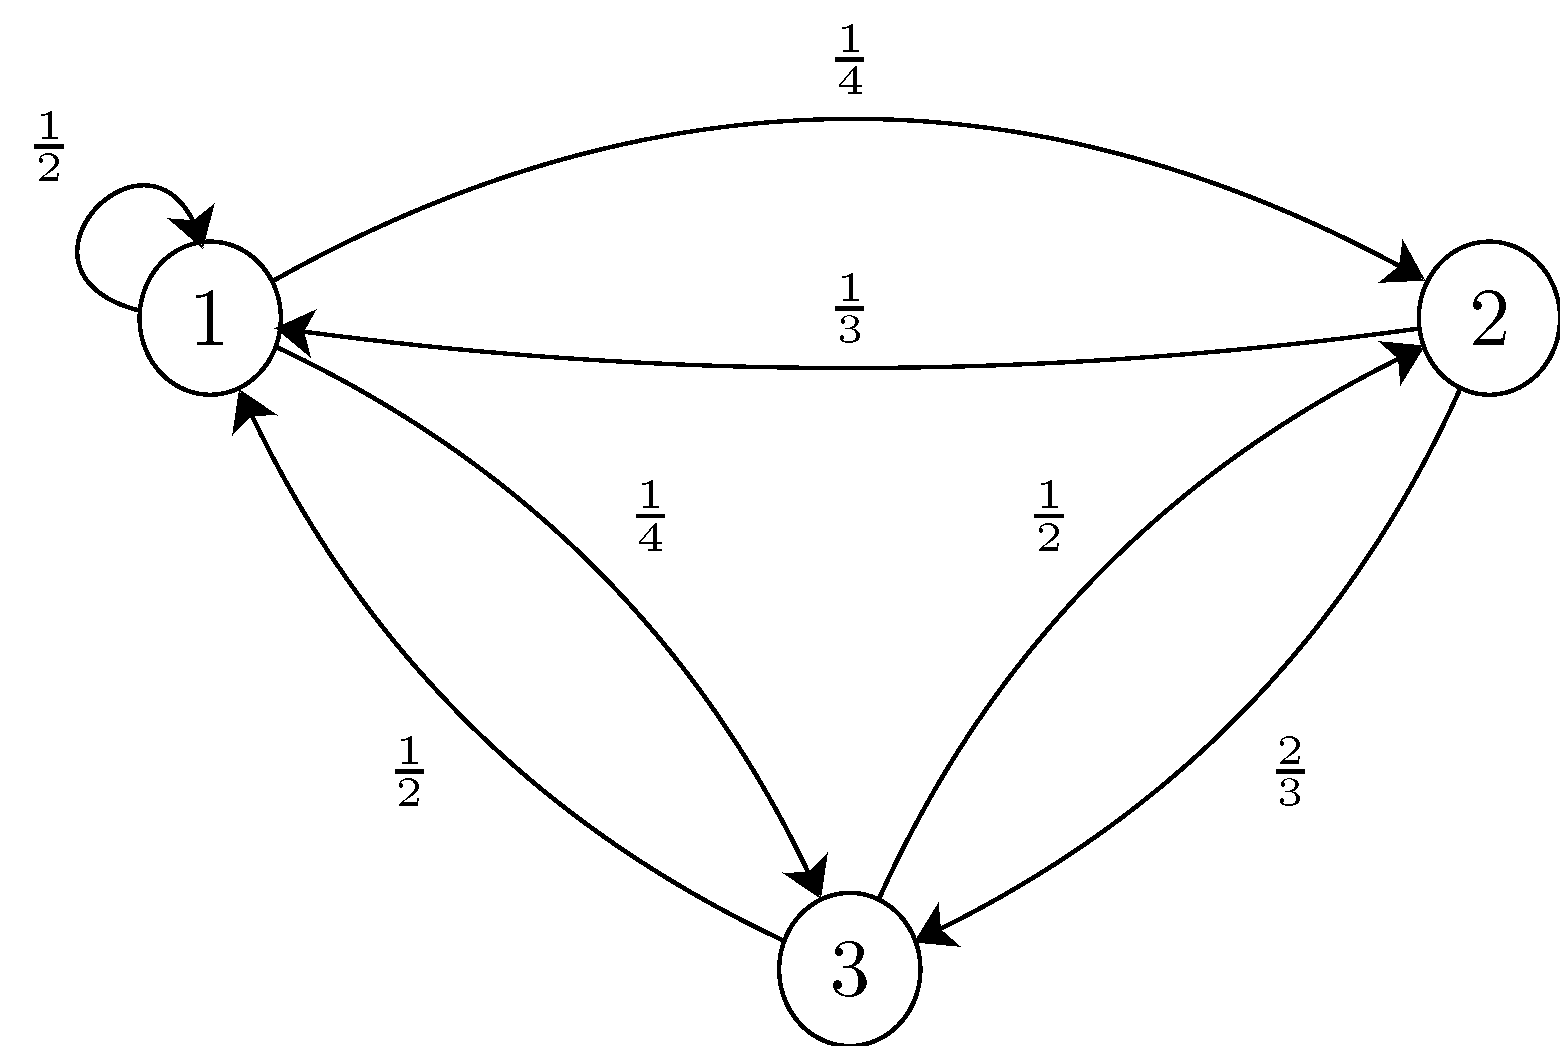 we can draw a state transition diagram